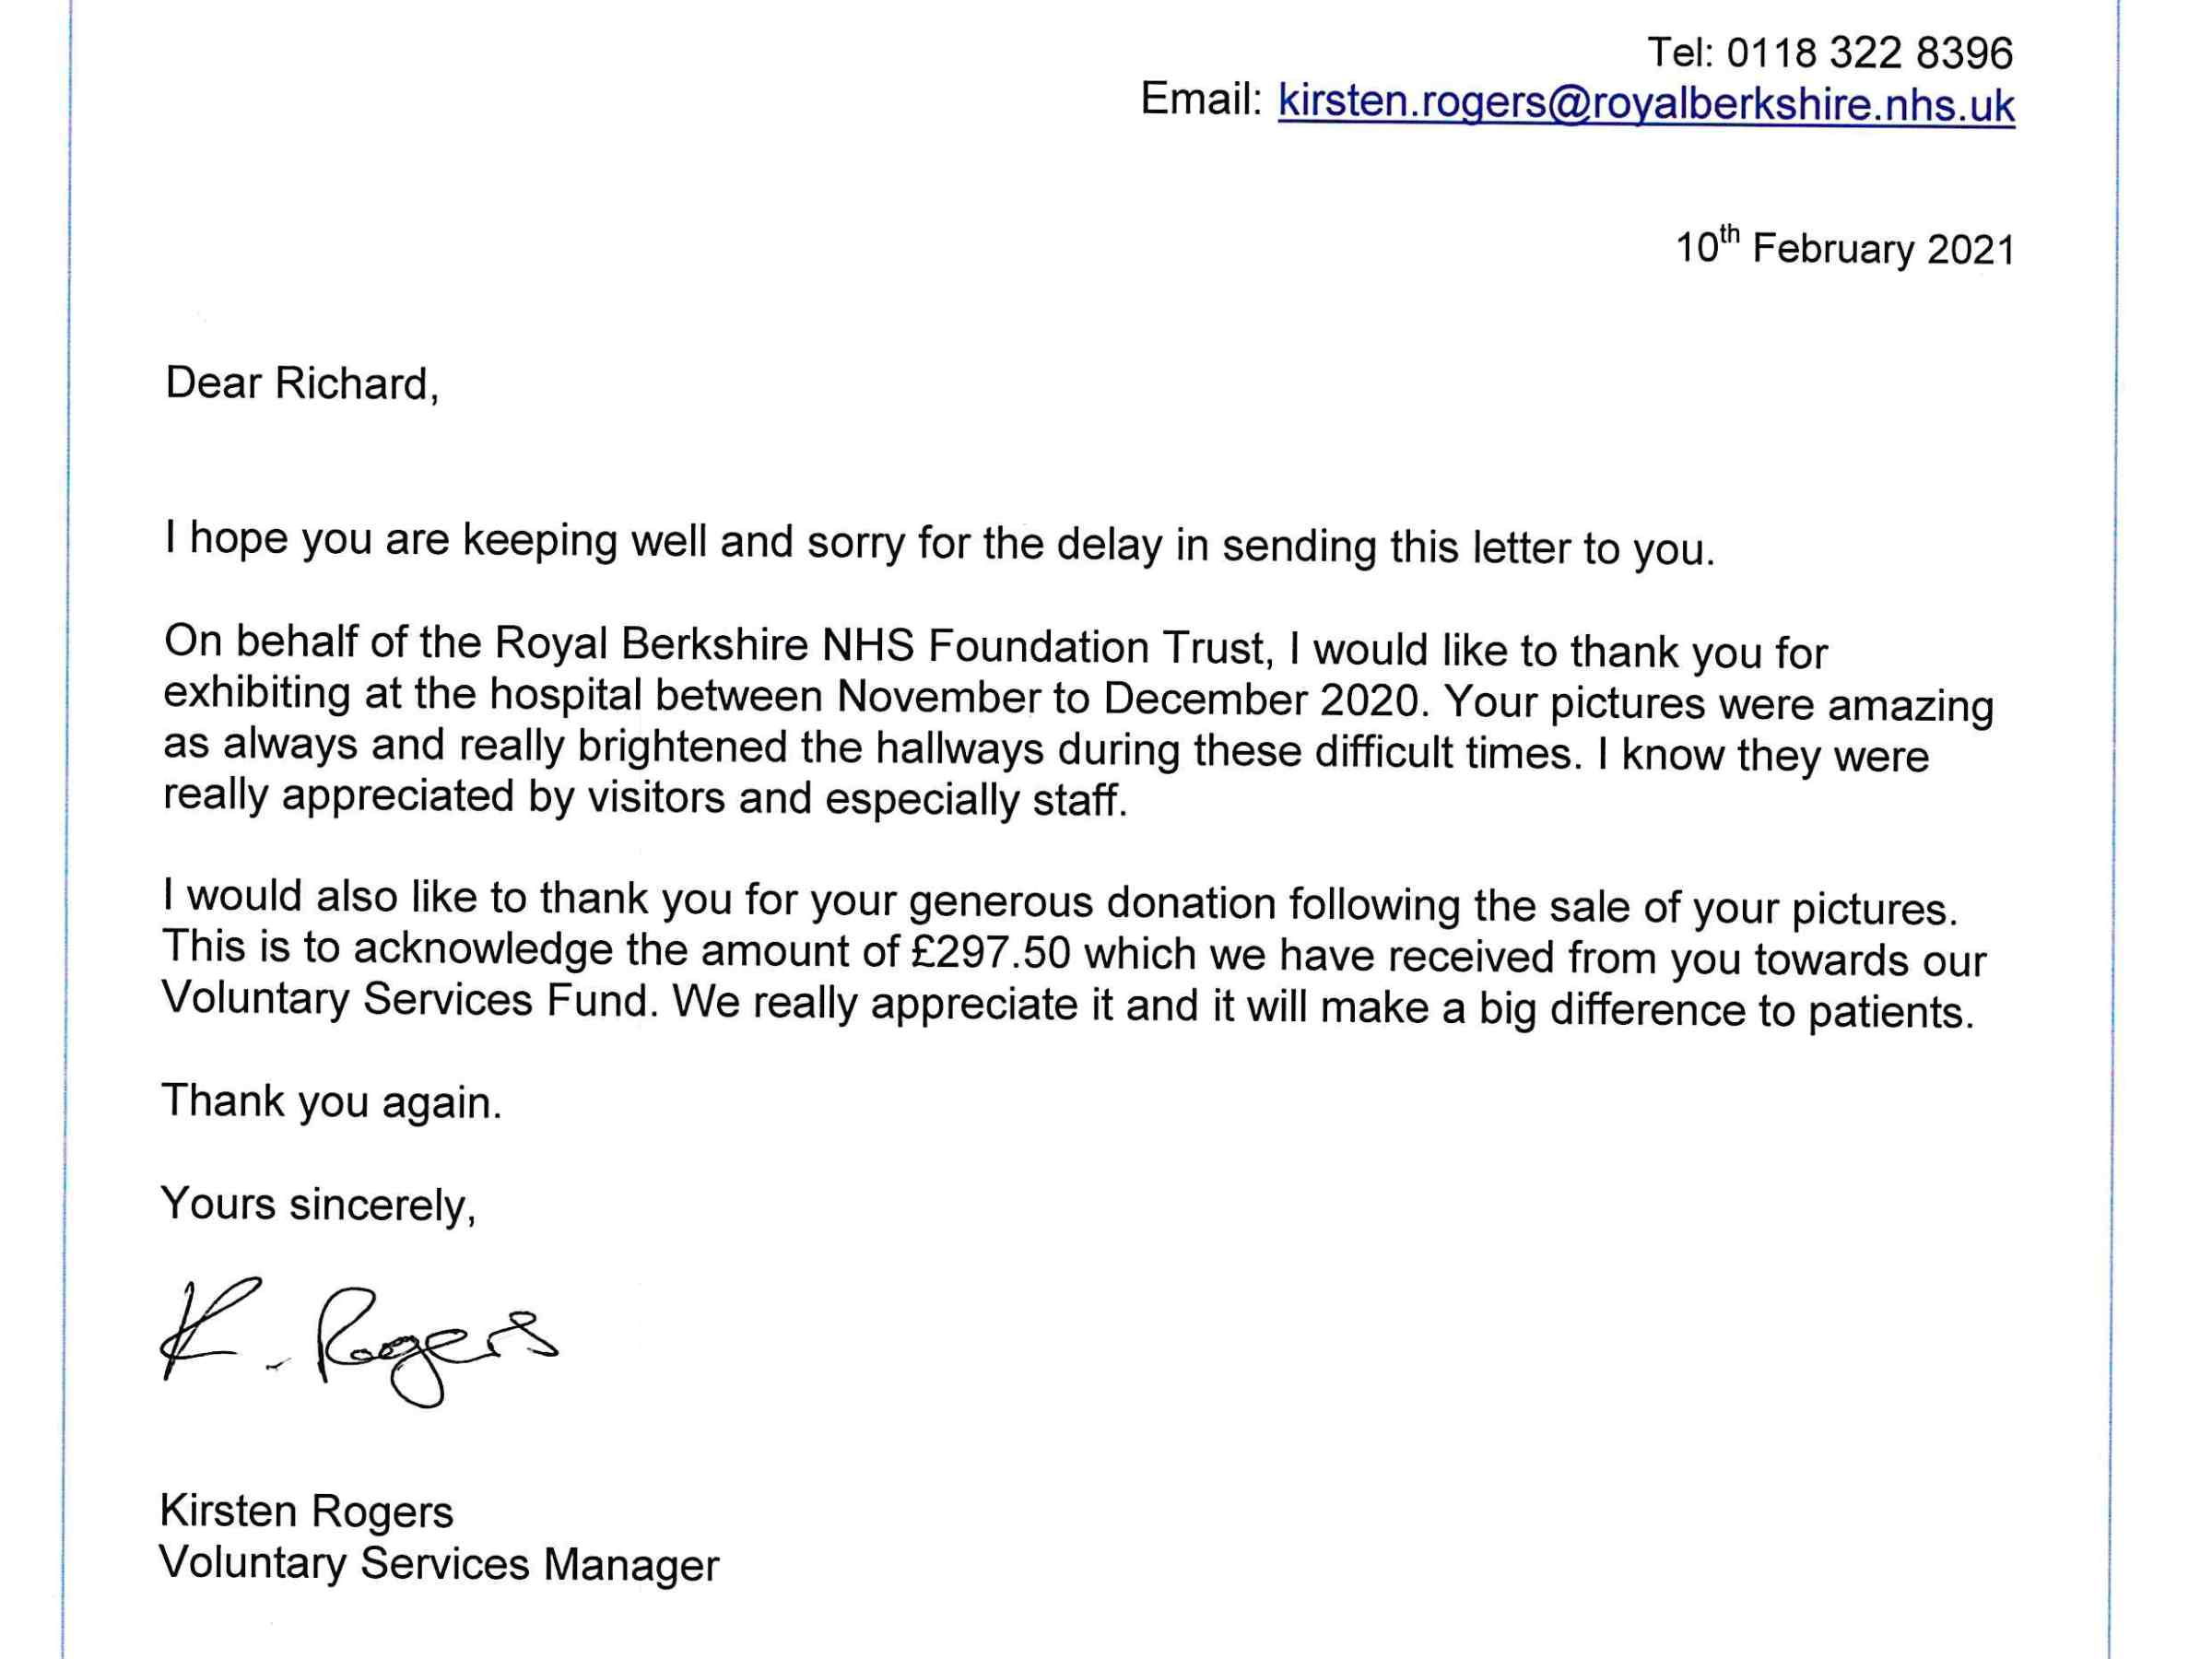 Voluntary Service thank you letter for the NHS Royal Berkshire Hospital Charity Exhibition